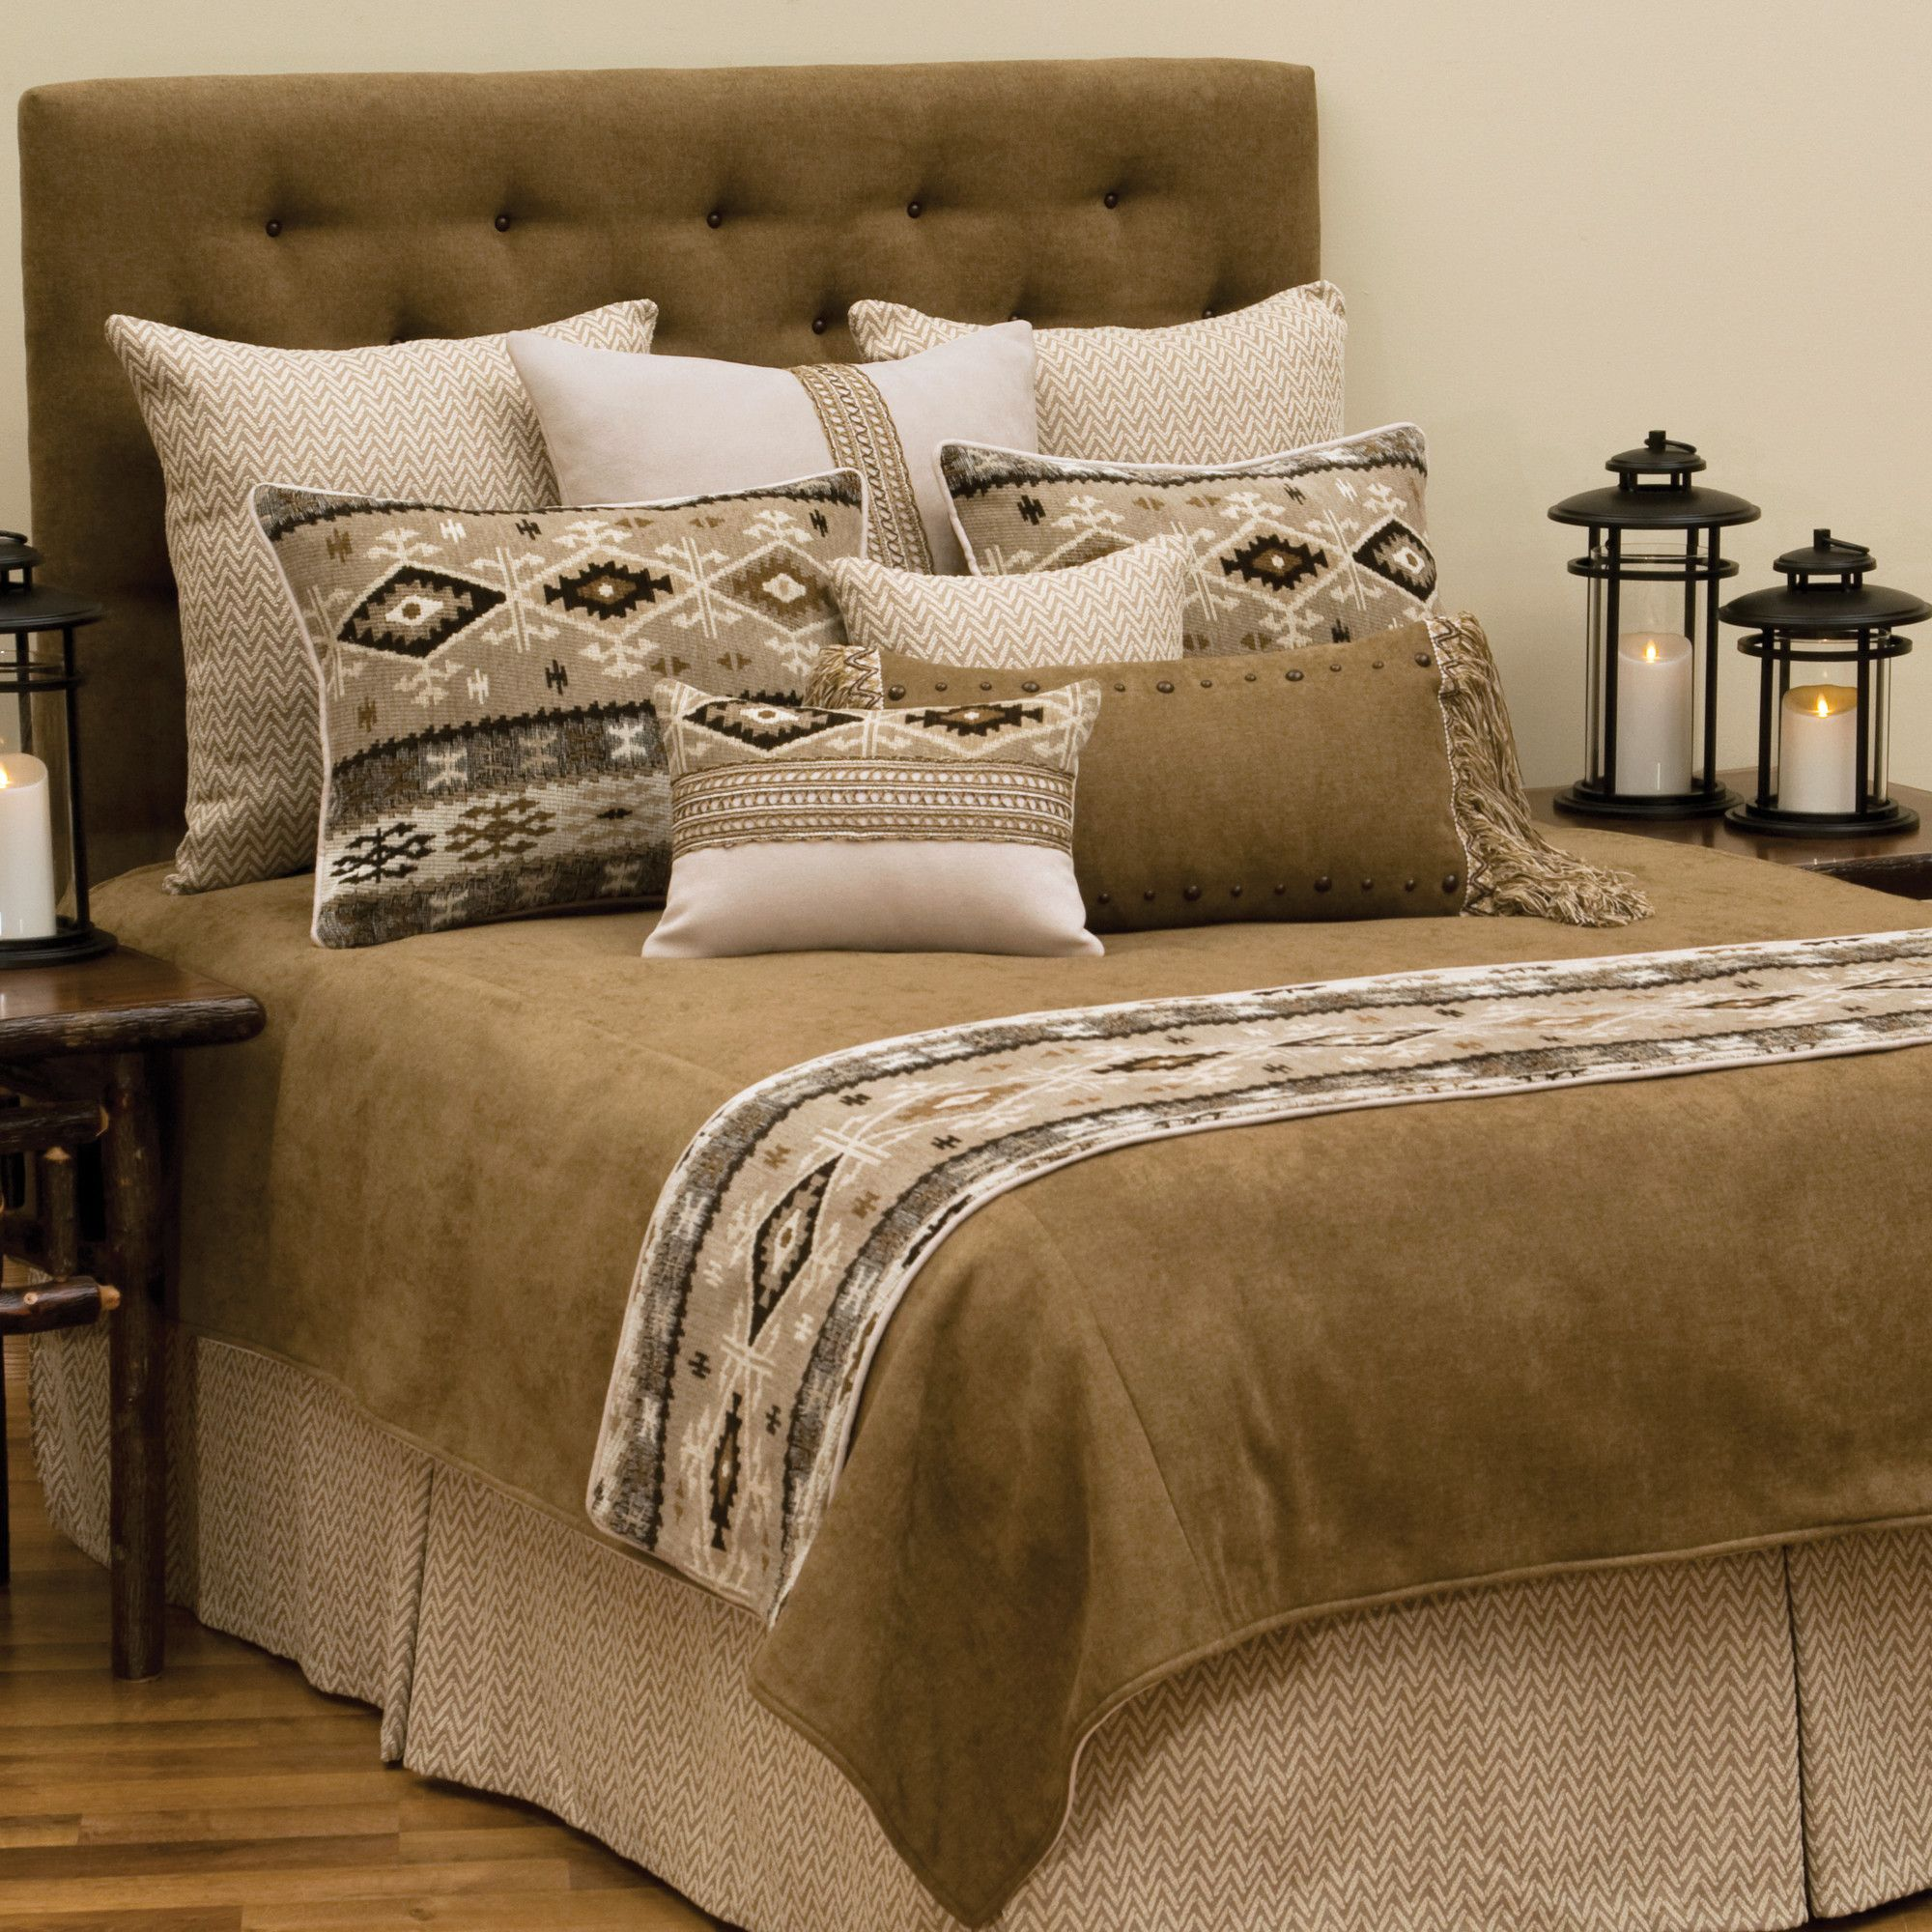 furnishings luxury rustic comforters style cabin in home cookwithalocal decorate image of huts comforter bedding